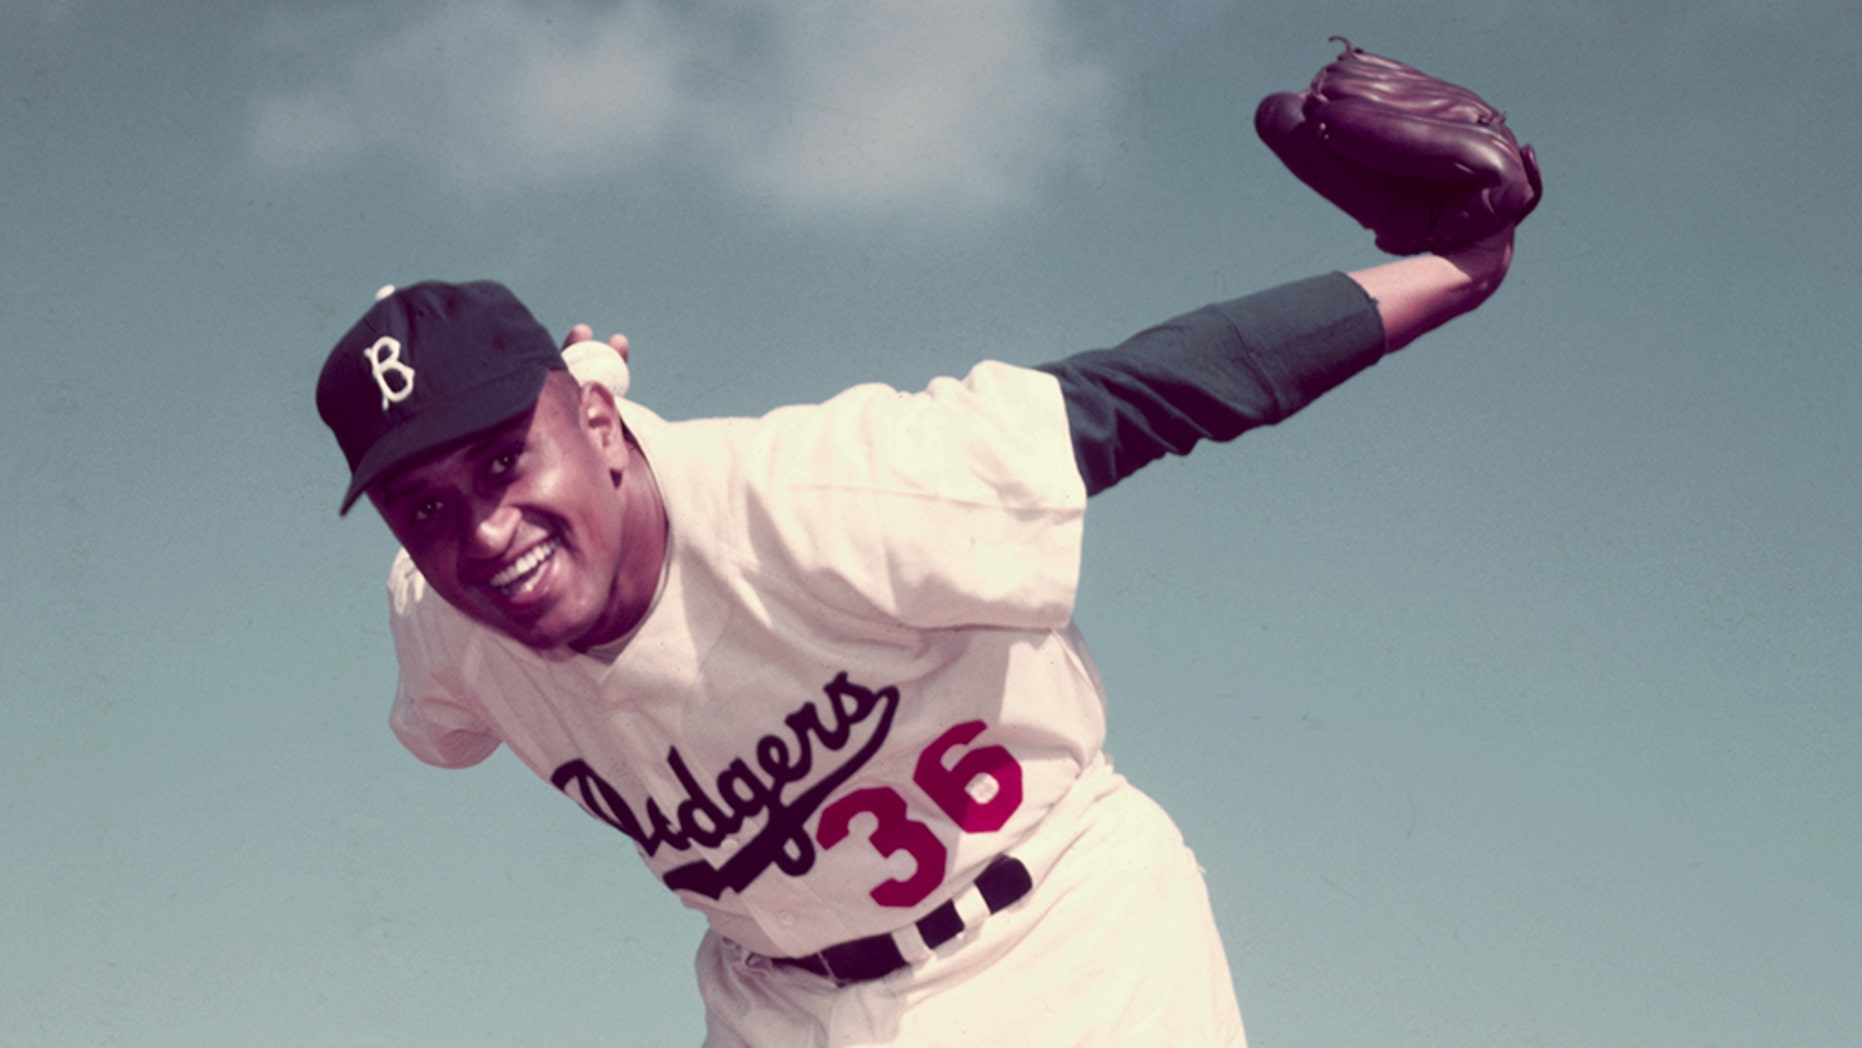 Dodgers great Don Newcombe has gone Tuesday of a long illness, the team said in a statement. He was 92.